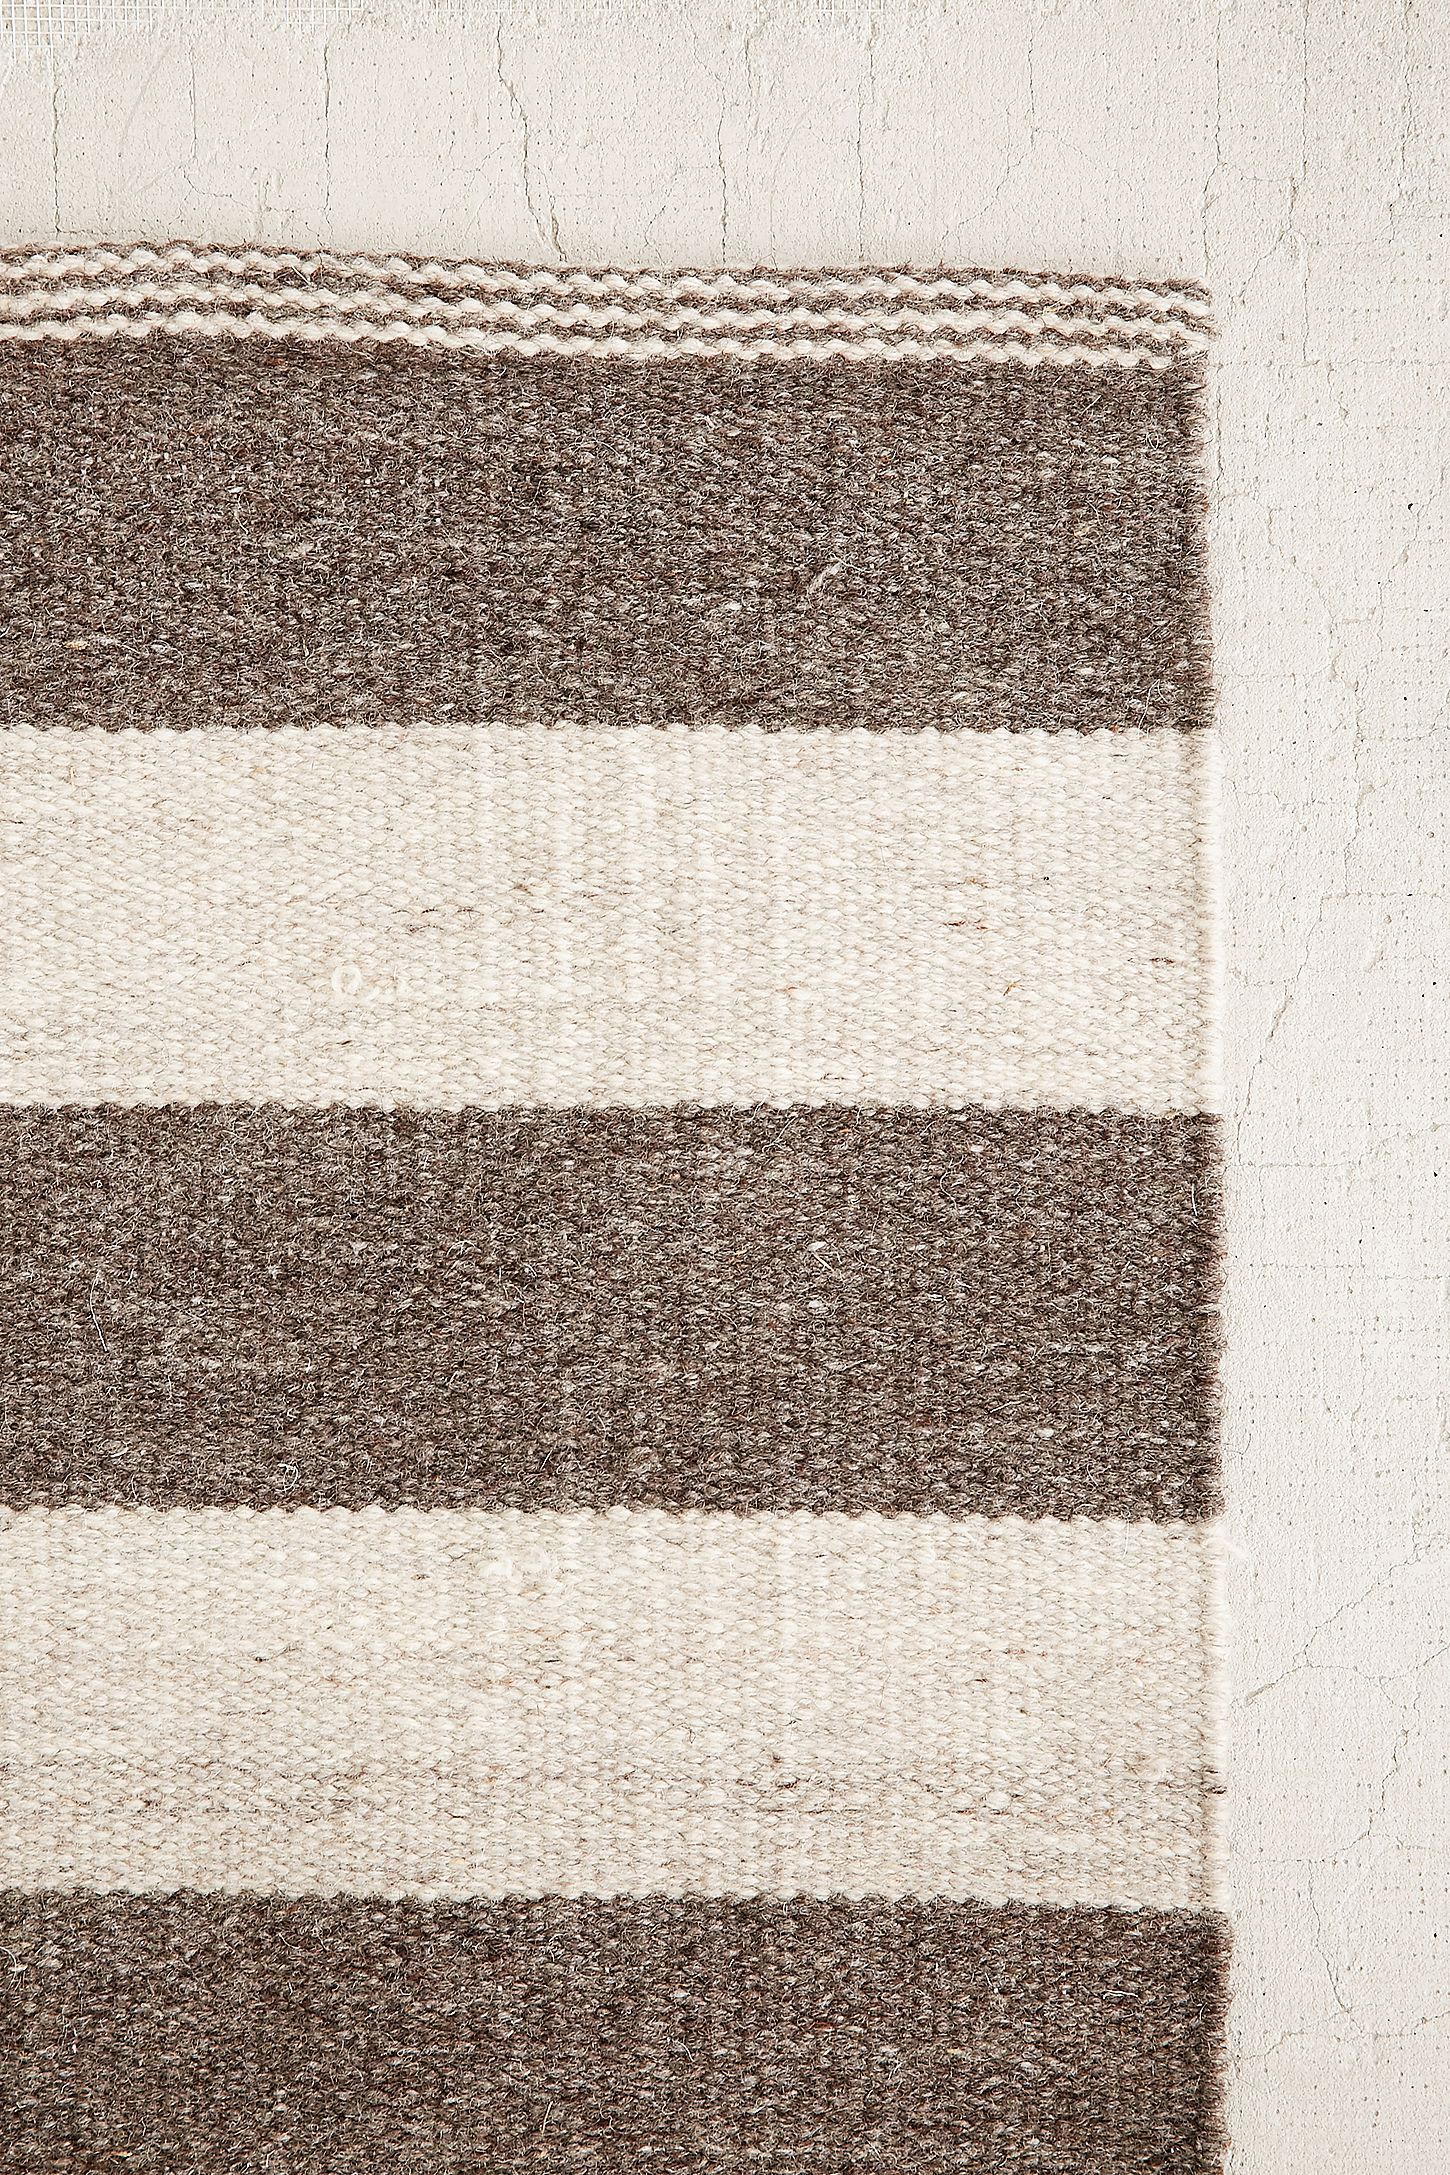 Slide View 3 Abbey Offset Stripes Wool Rug Rugs Wool Rug